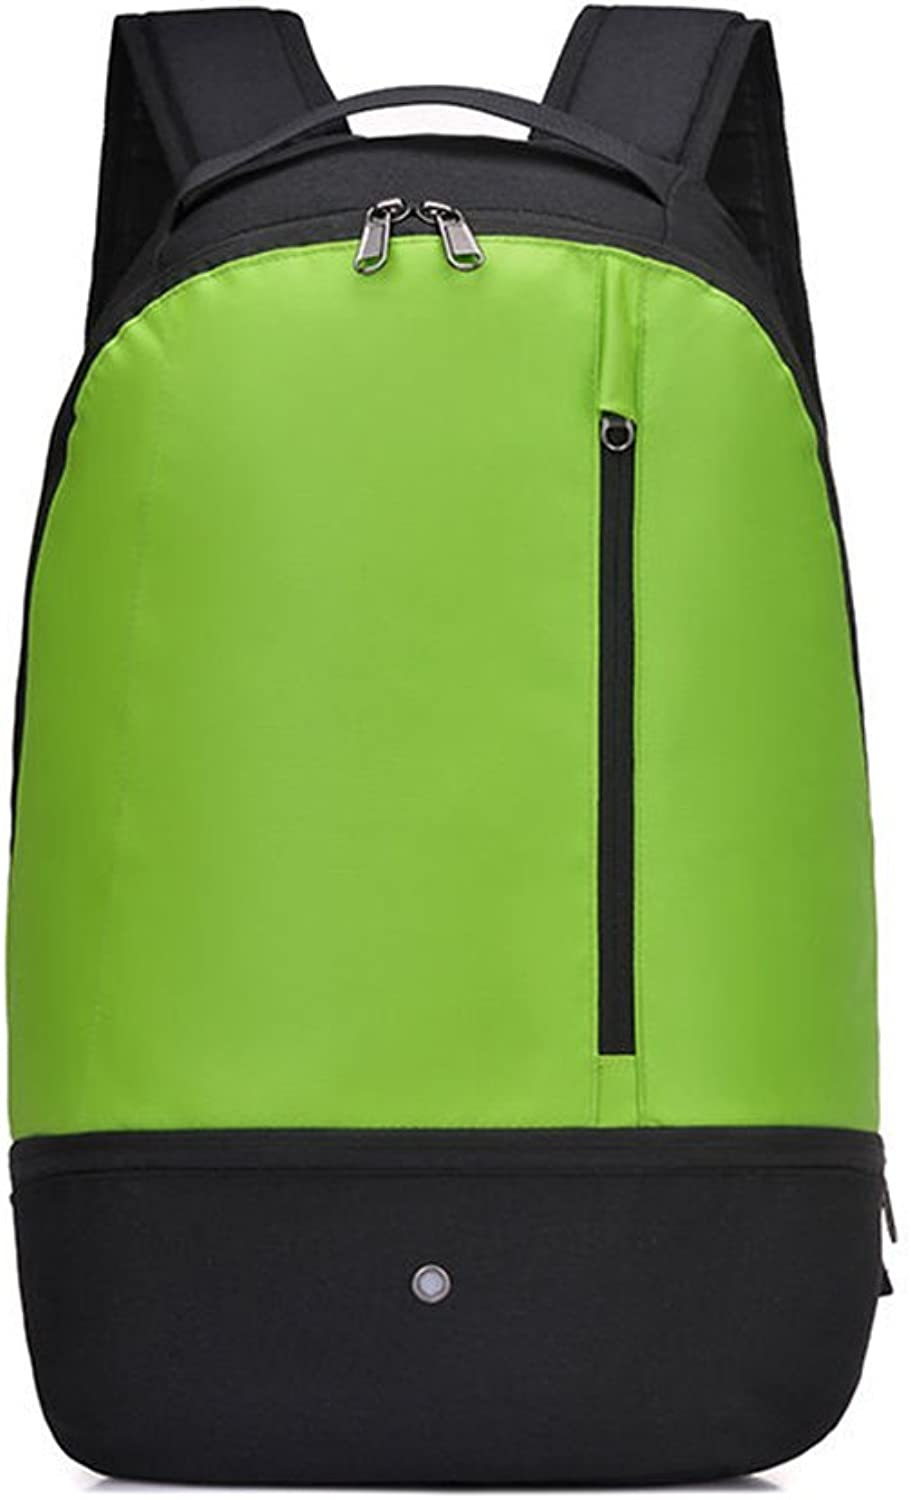 Sports Backpack Travel Bag Mountaineering Camping Mountaineering Hiking Backpack Basketball Football,C